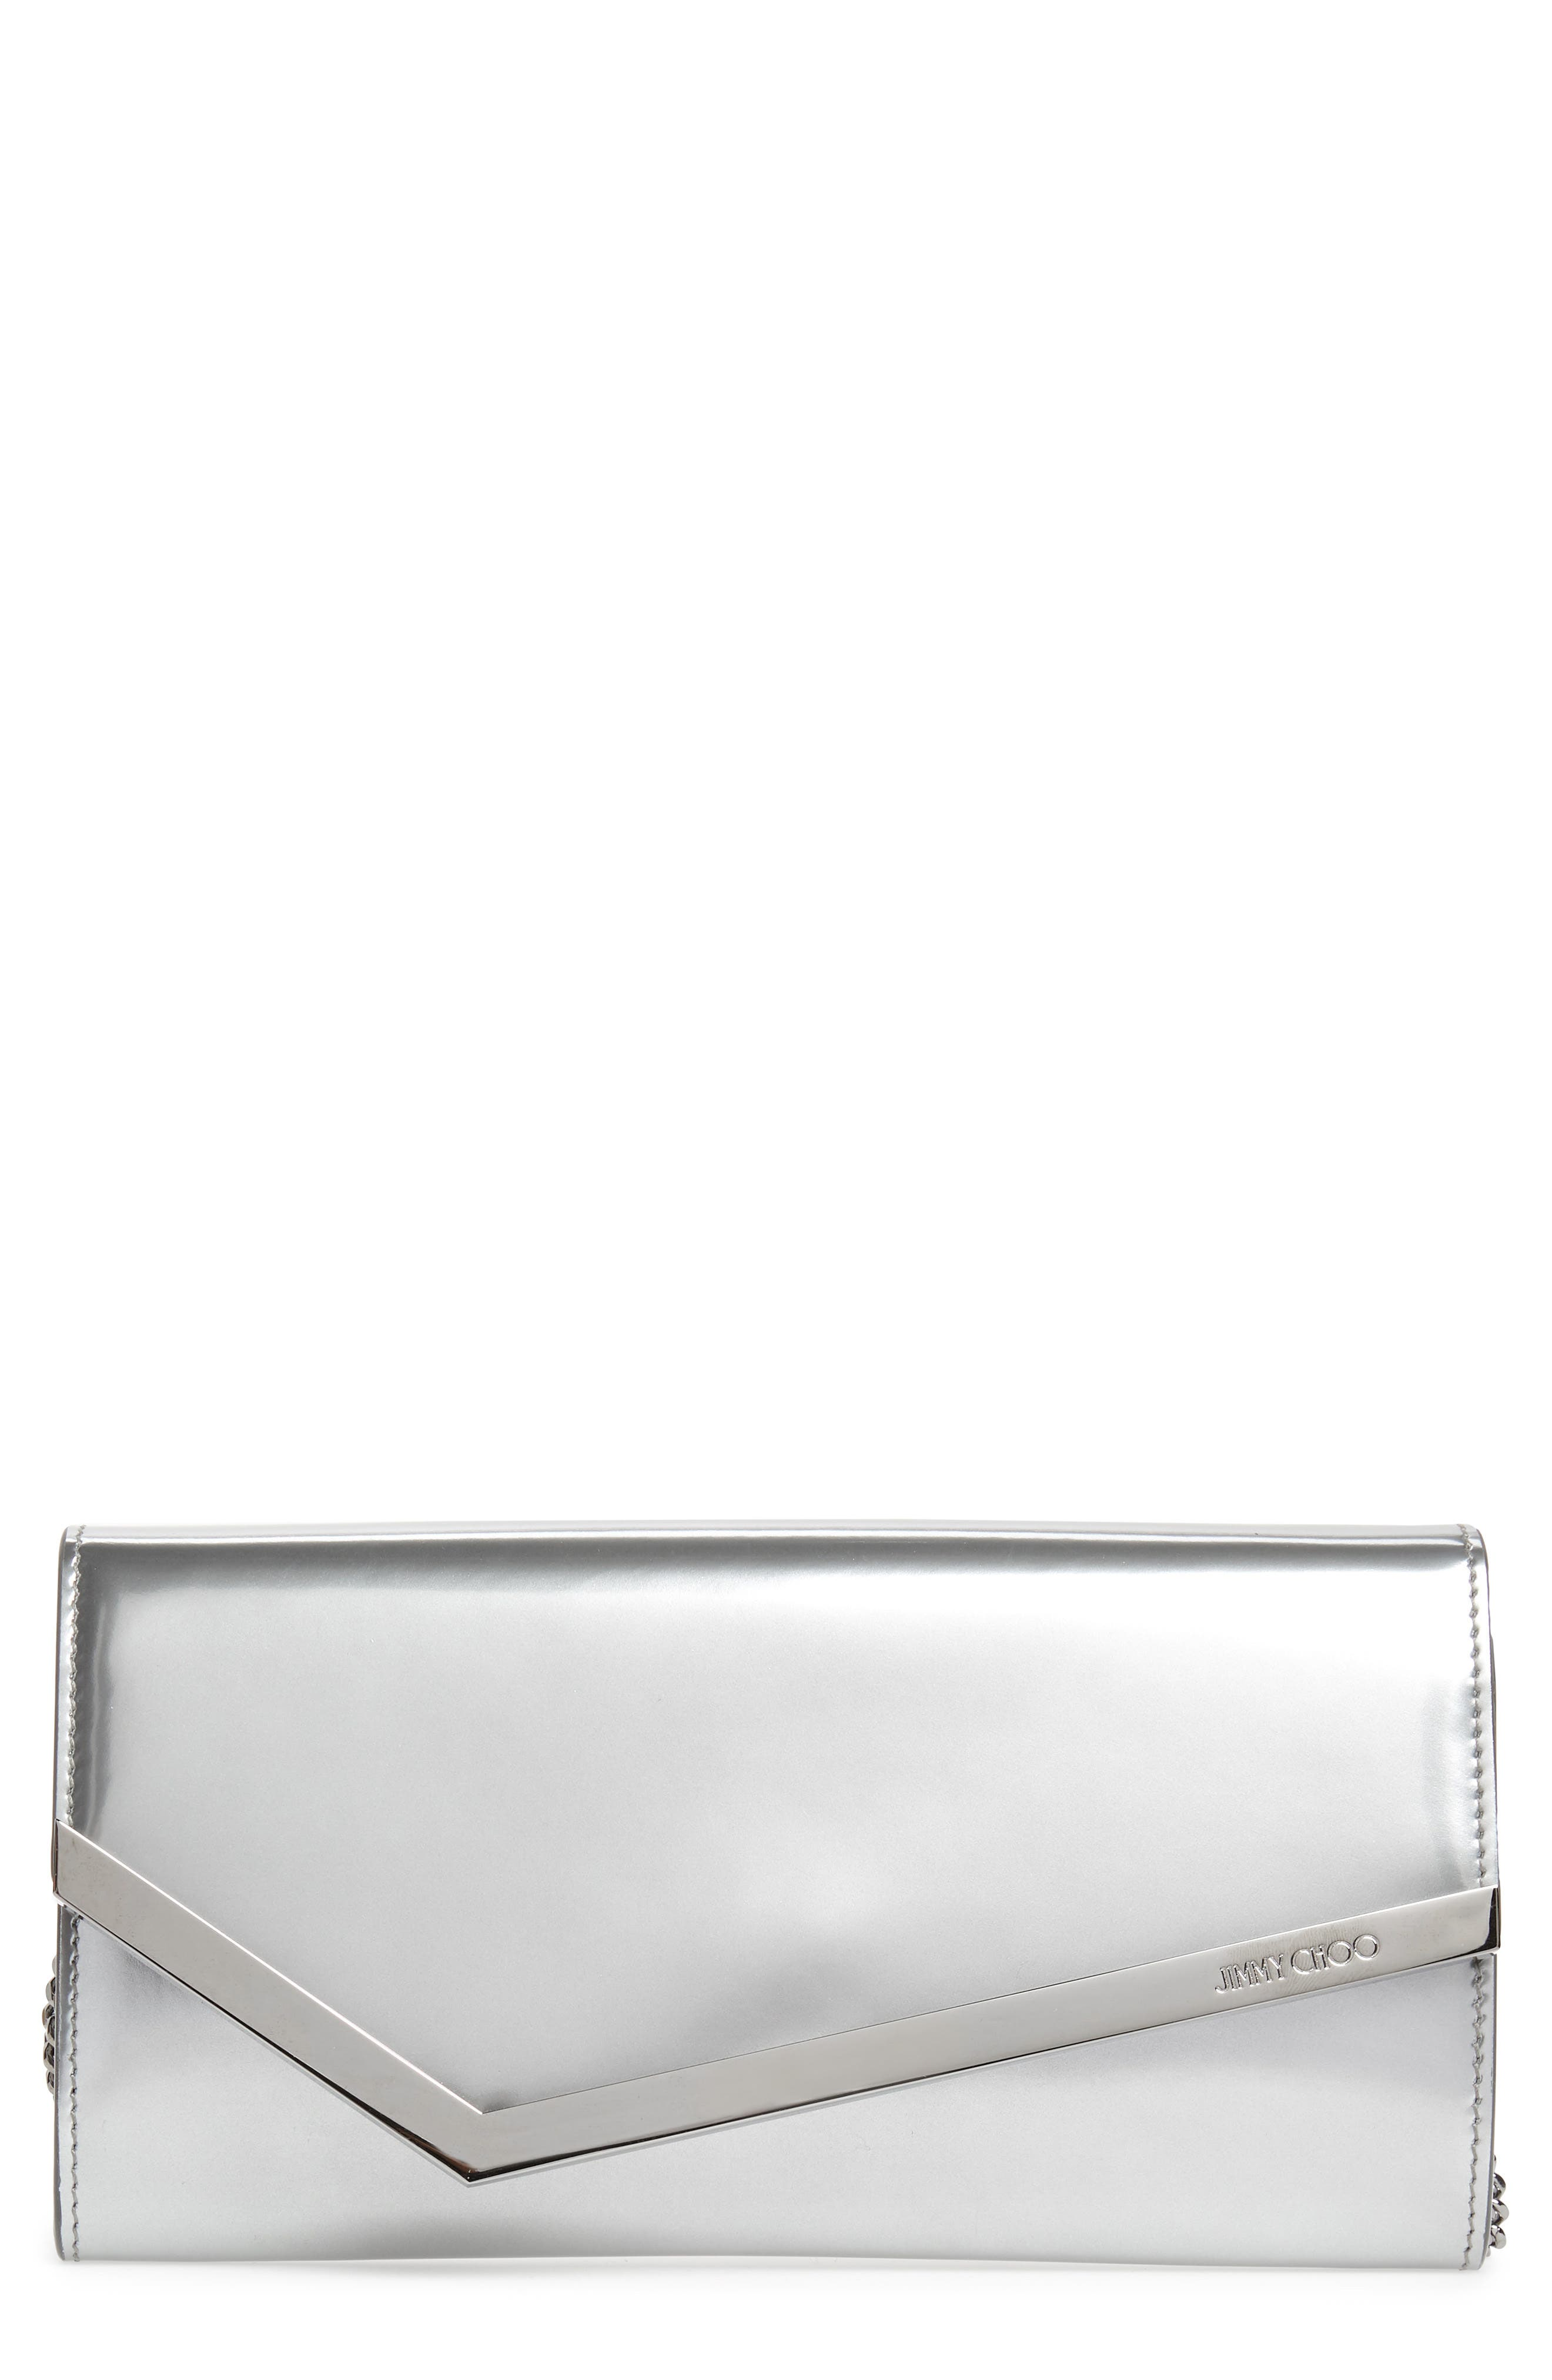 JIMMY CHOO, Emmie Metallic Leather Clutch, Main thumbnail 1, color, SILVER